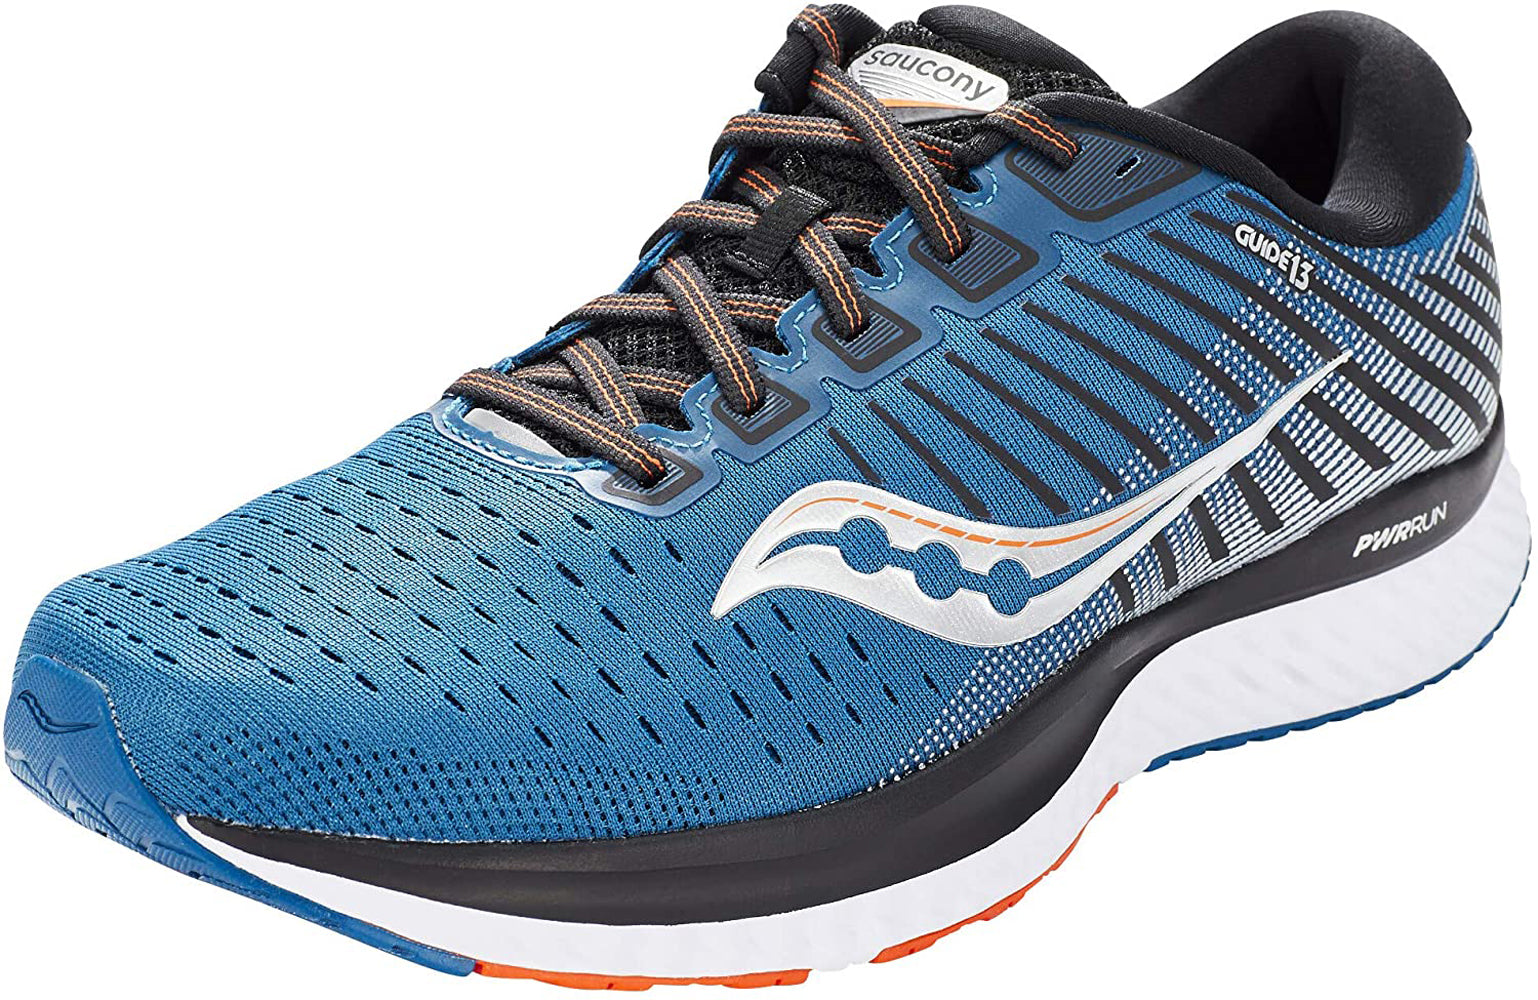 Saucony Men's Guide 13 Running Shoe in Blue Silver Side Angle View